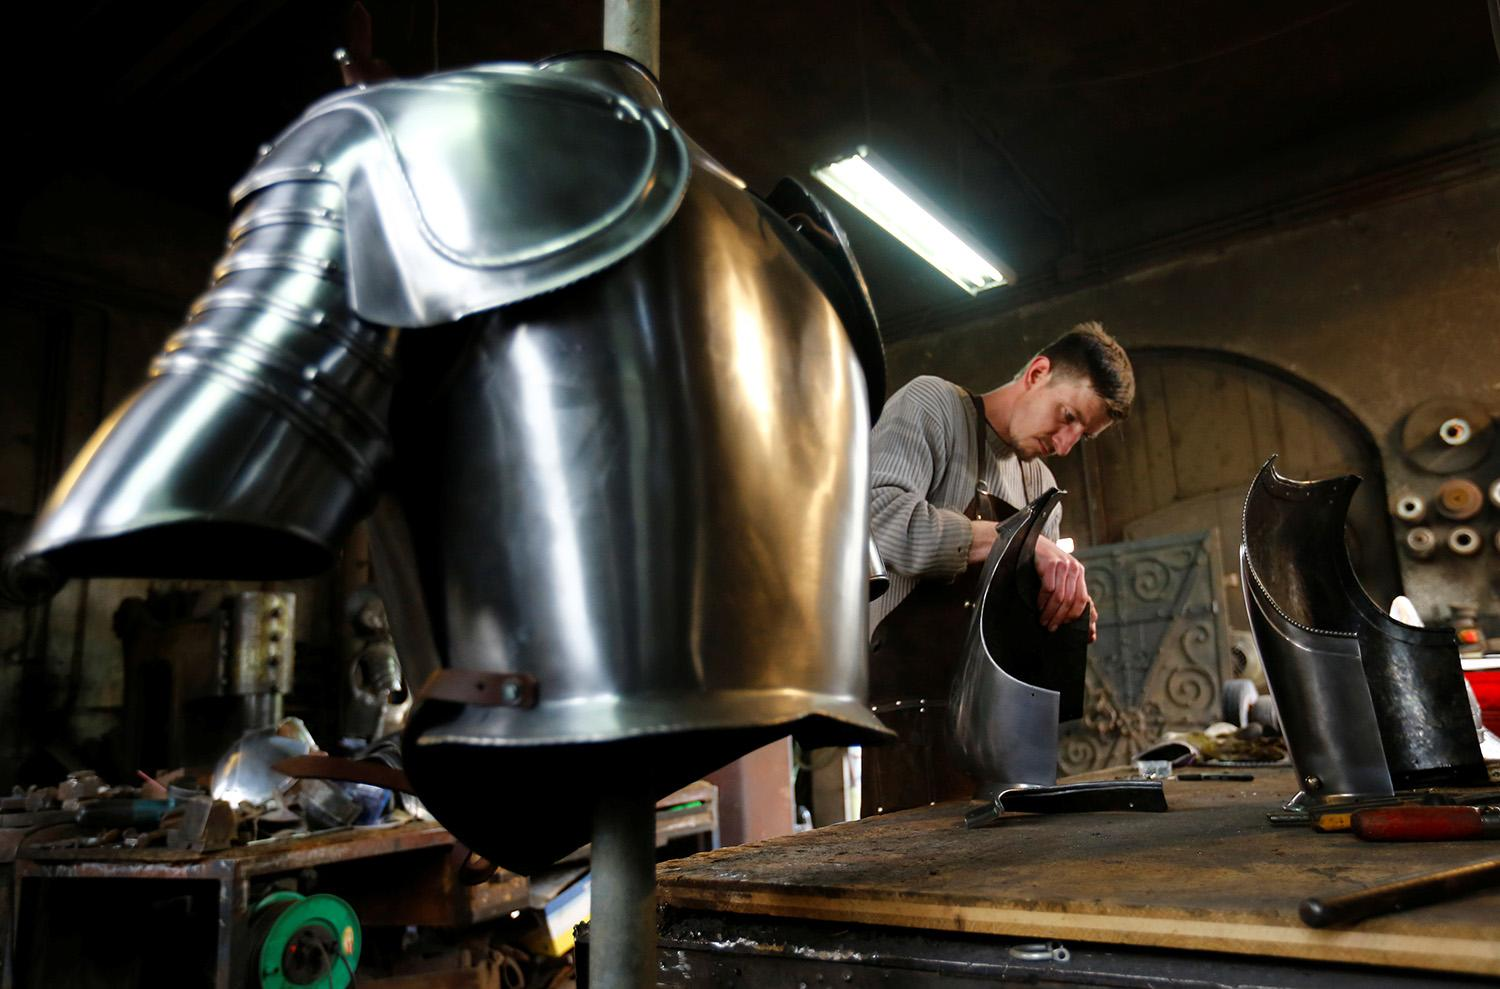 <p>Blacksmith Johann Schmidberger works on a suit of armor for the Vatican's Swiss Guards at his workshop in Molln, Austria, March 29, 2017. (Photo: Leonhard Foeger/Reuters) </p>